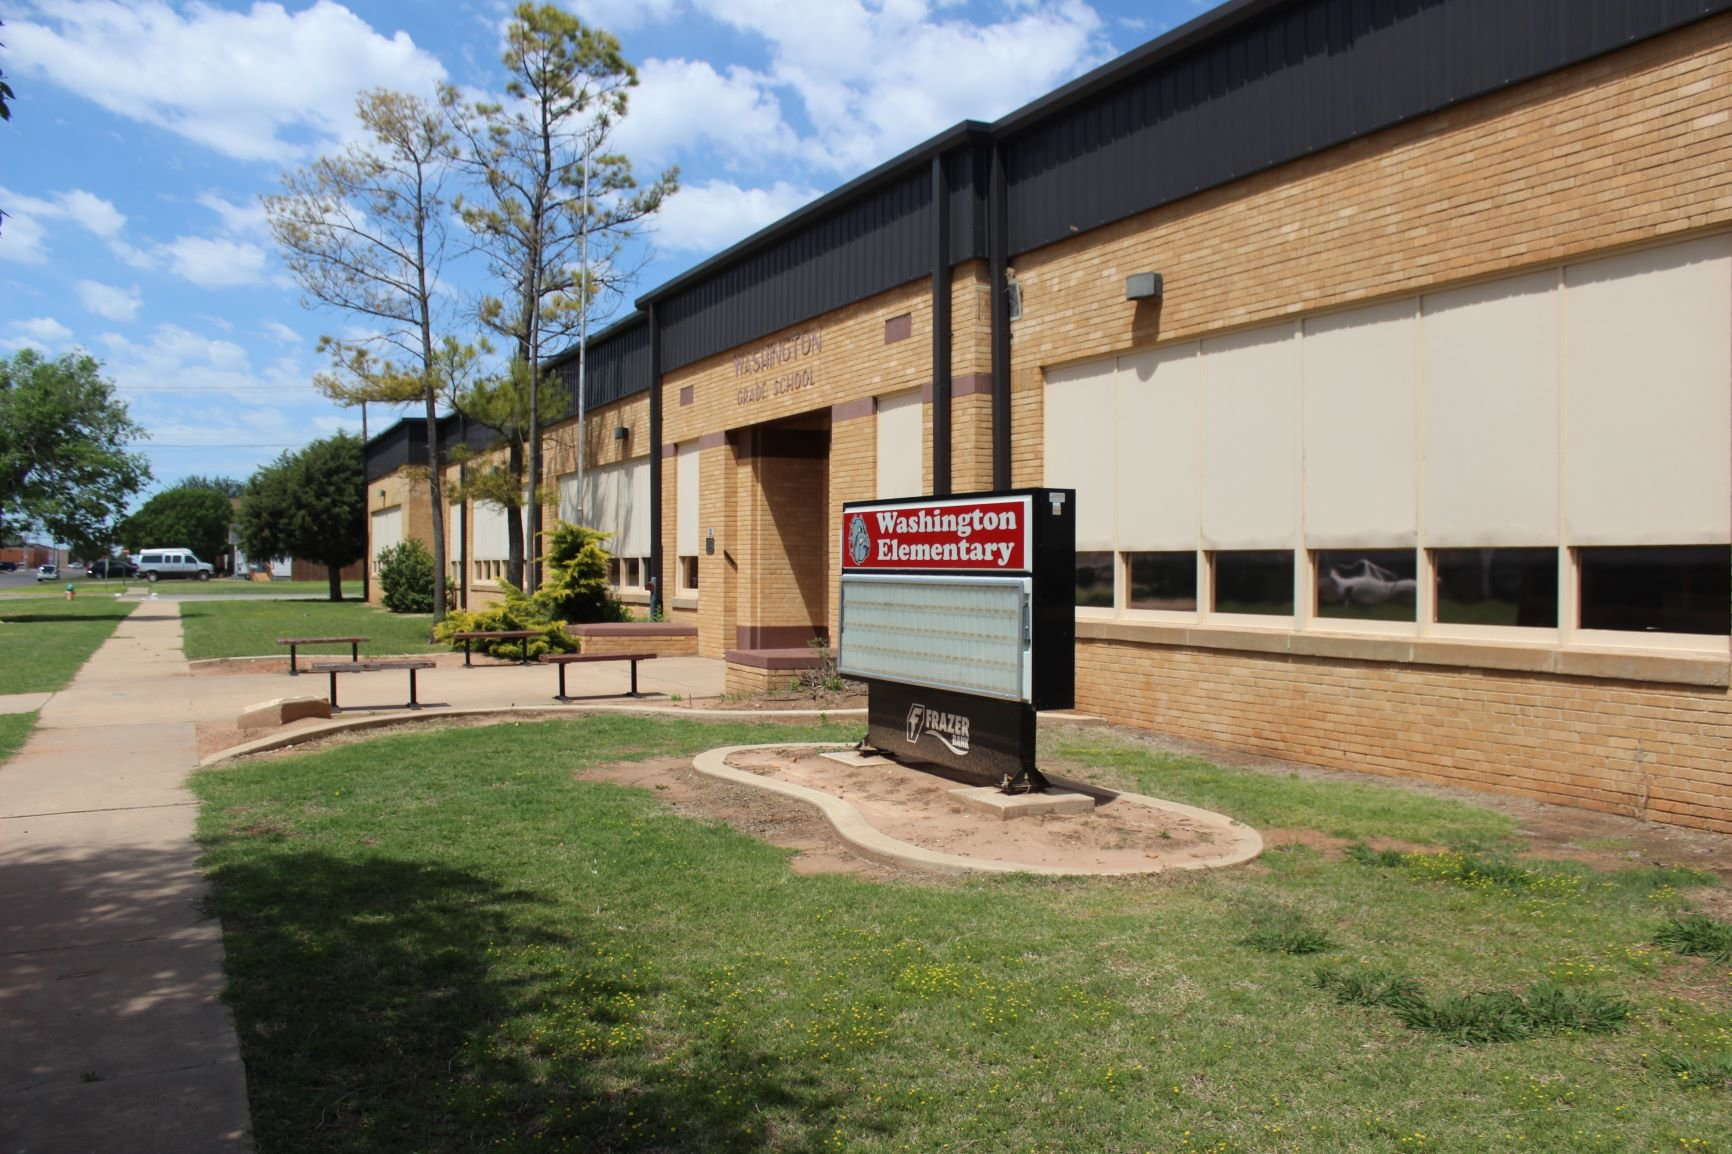 Washington Elementary School which was once the housing of altus high school students